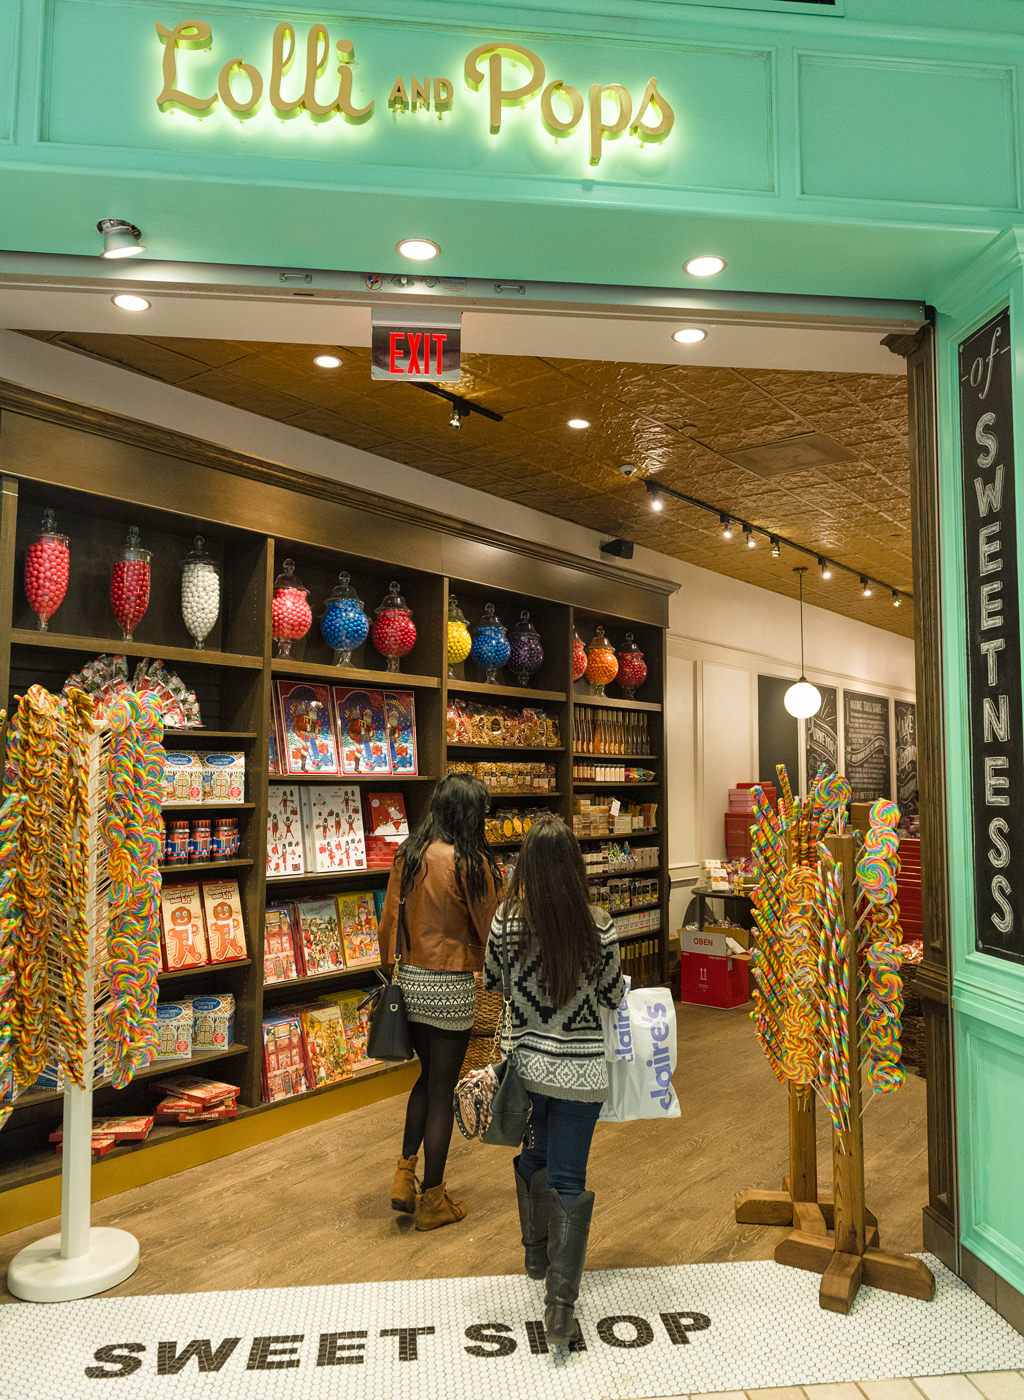 Neighborhood guide vienna and mclean washingtonian the retro candy shop lolli and pops sells treats from around the world photograph by vtopaller Images